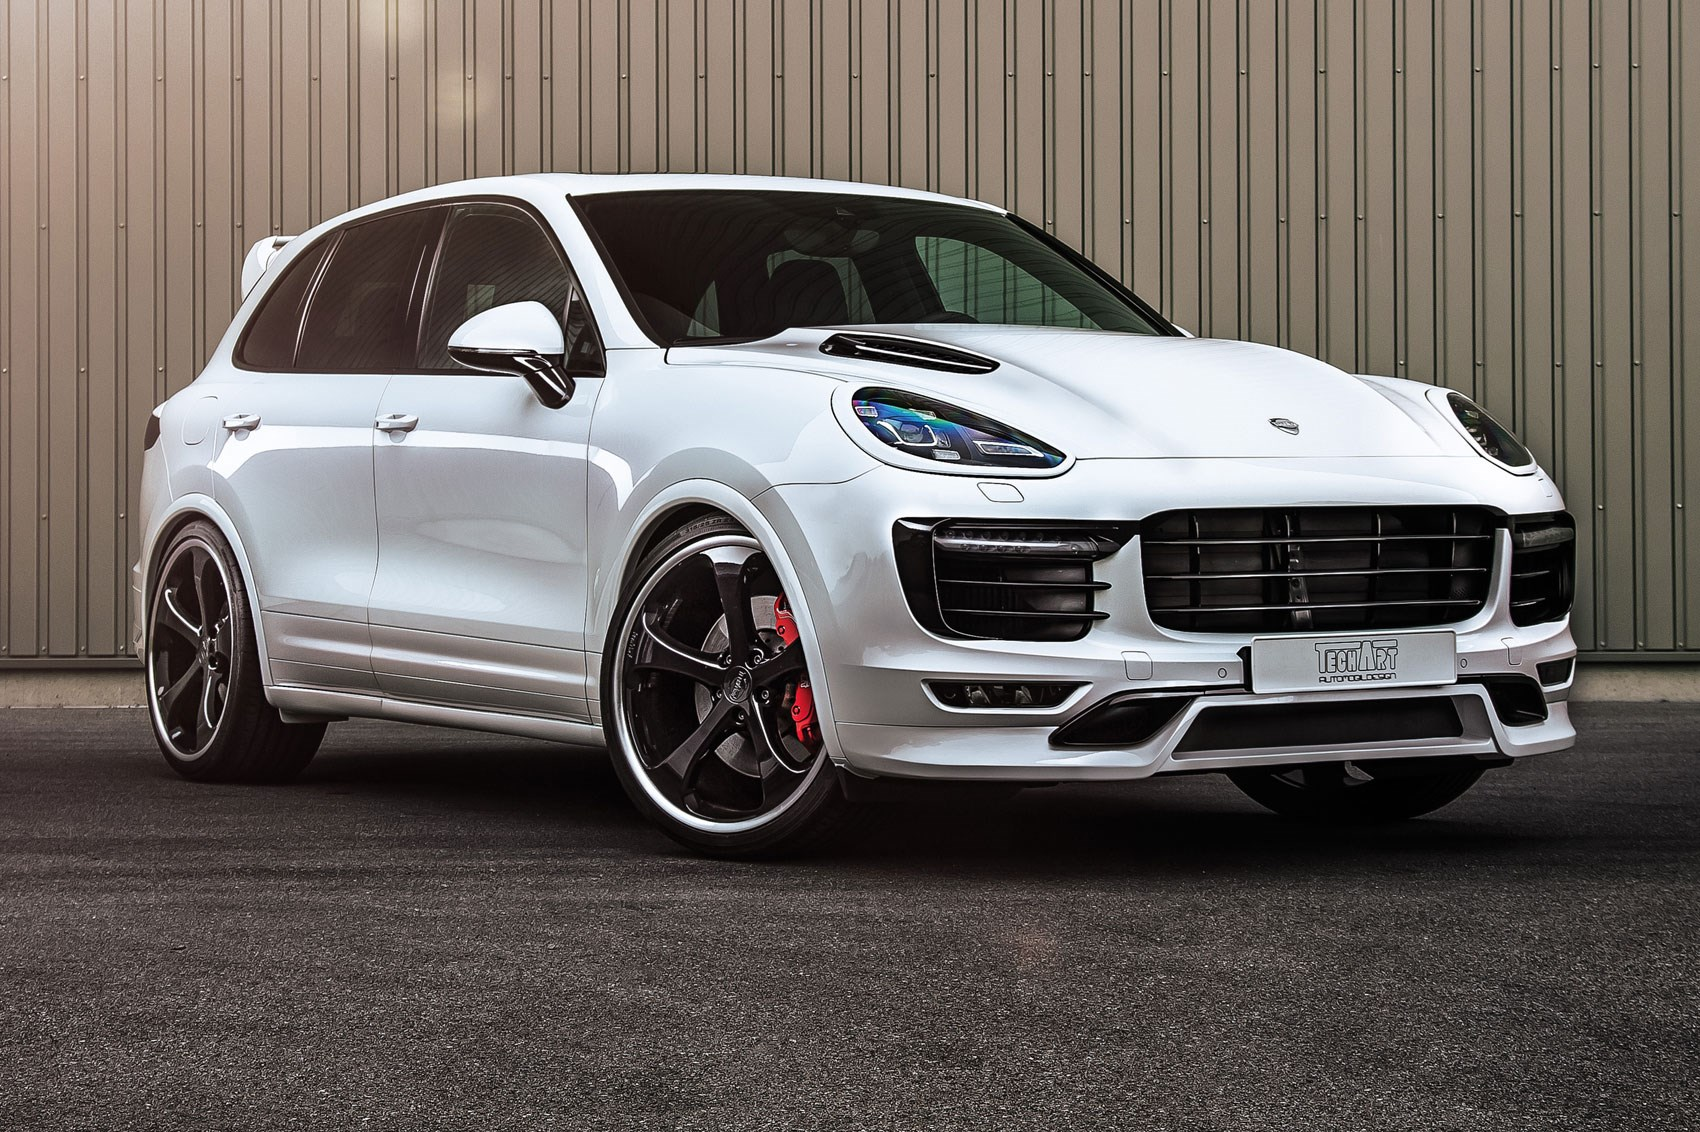 Techart Porsche Cayenne Turbo: the 700bhp SUV by CAR Magazine